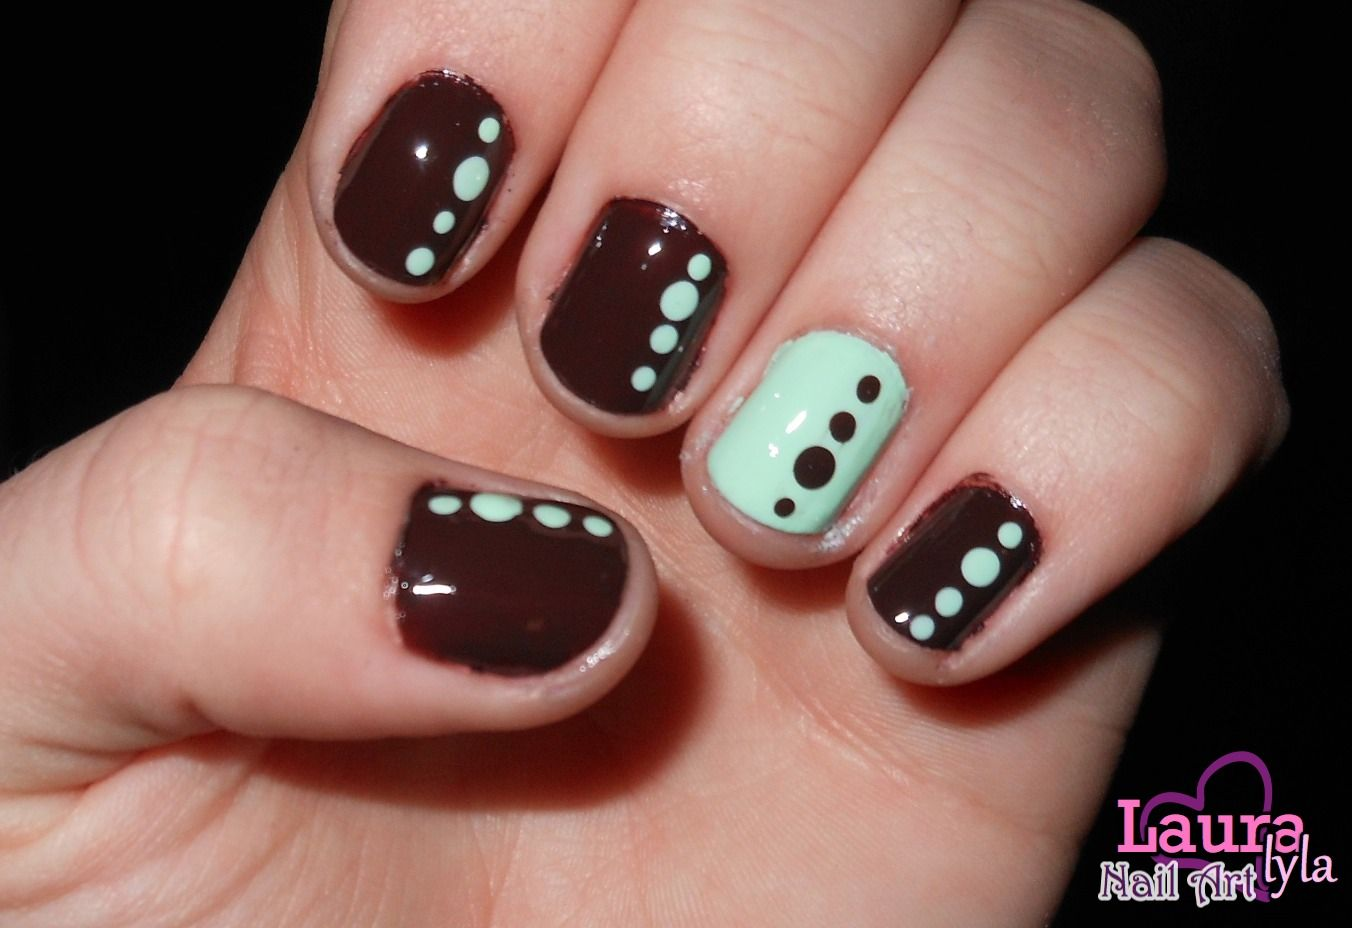 Cool Mint Nails http://www.youtube.com/user/lauralyla?feature=mhee